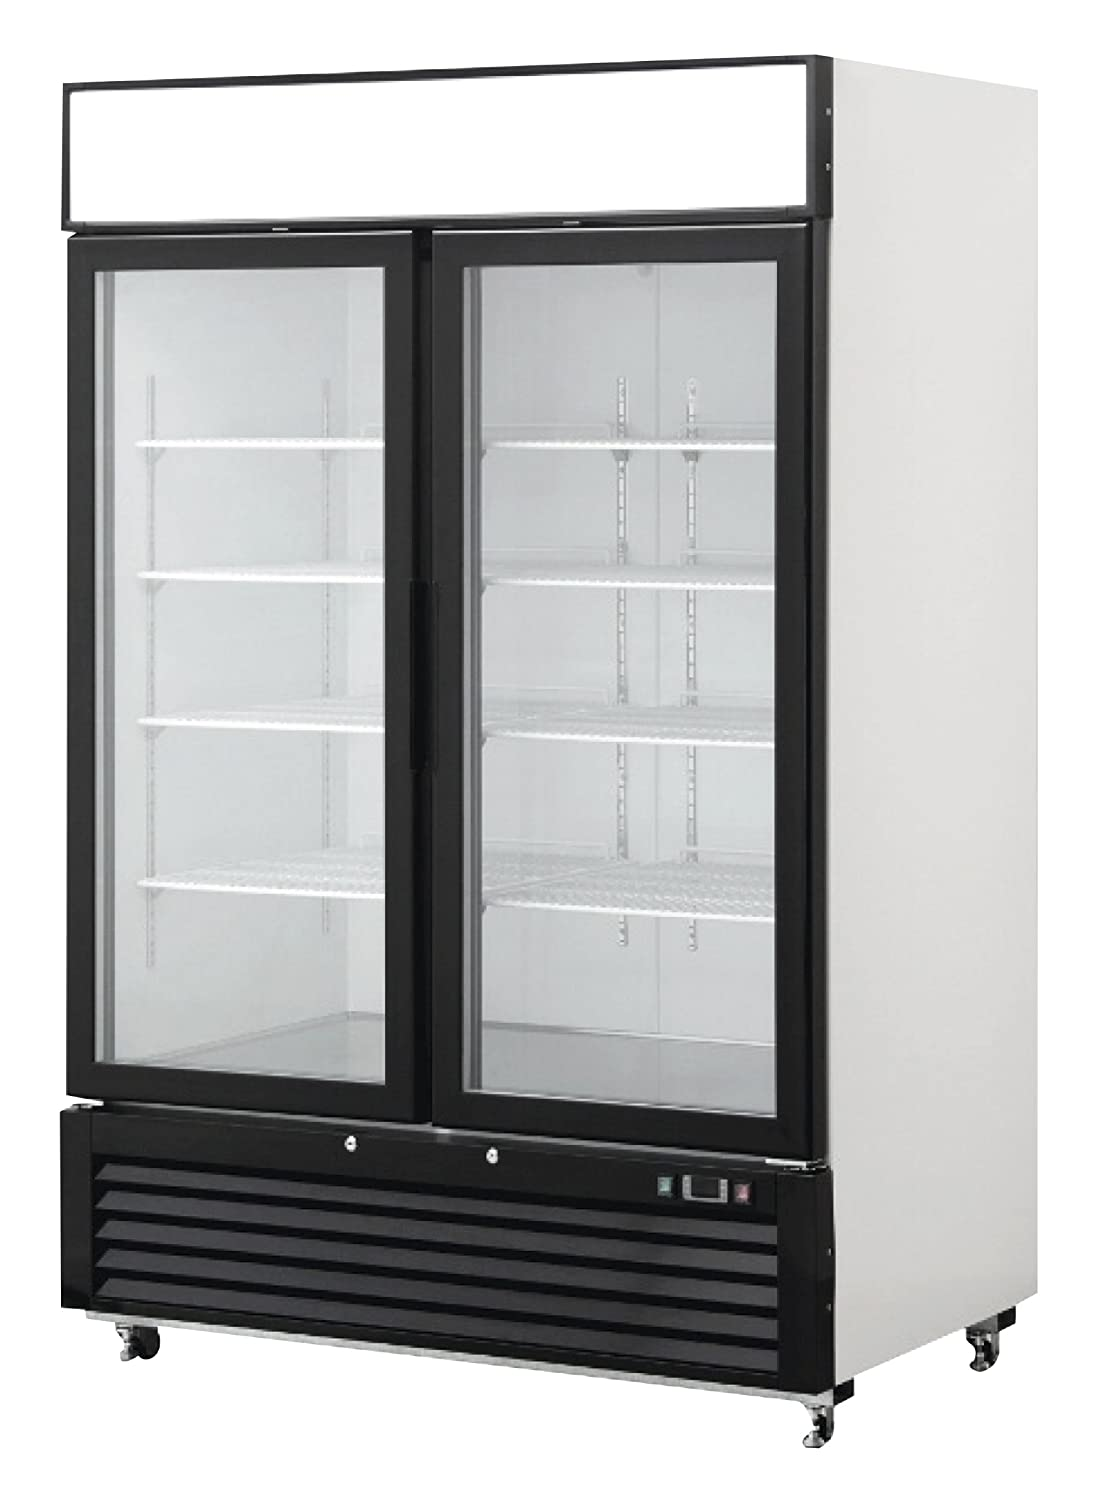 Commercial Refrigerators For Home Use Amazoncom 2 Door Commercial Glass Reach In Refrigerator